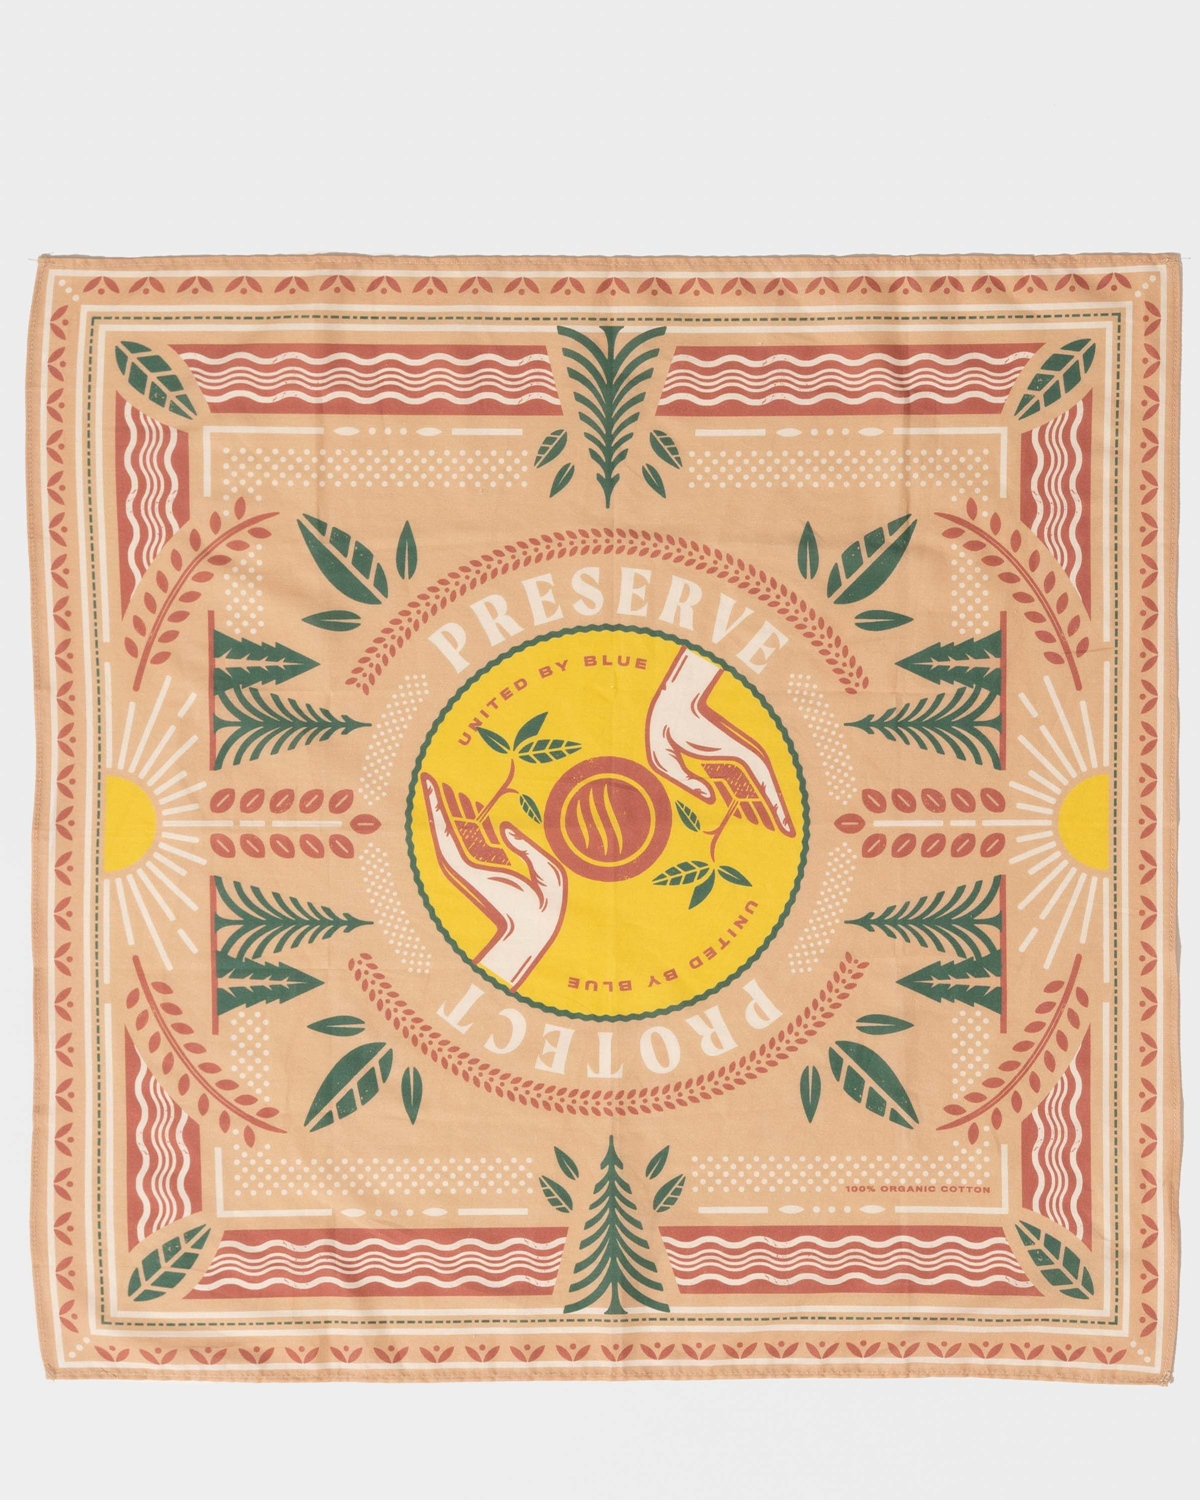 UNITED BY BLUE PRESERVE AND PROTECT BANDANA